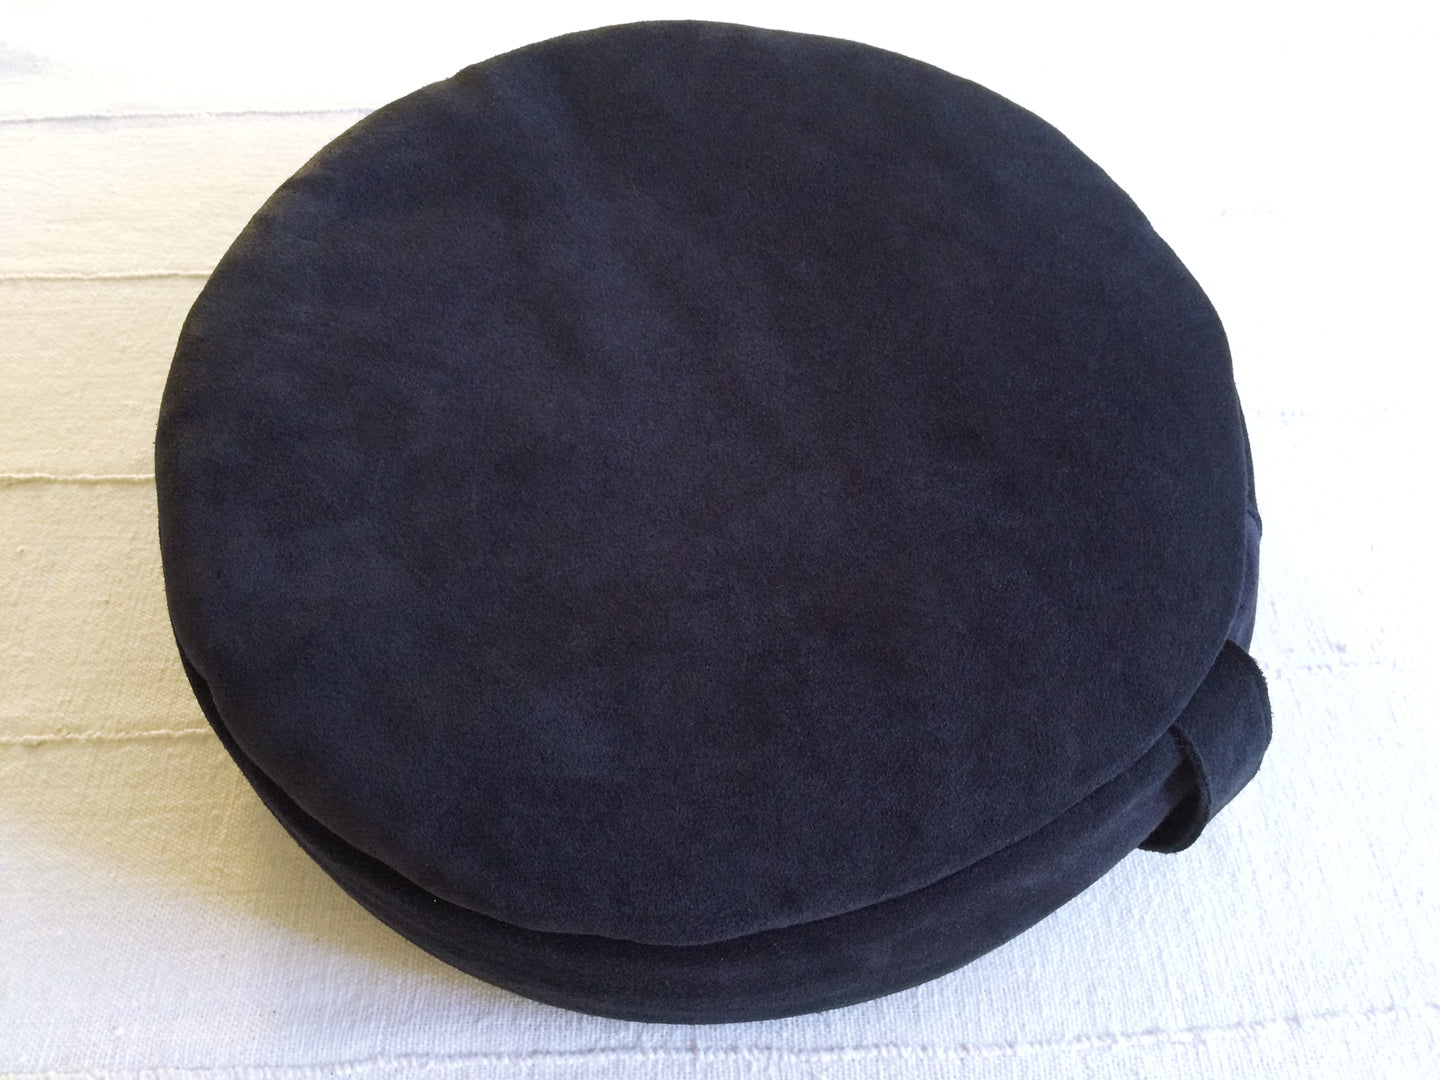 PEBBLE meditation cushion in navy suede